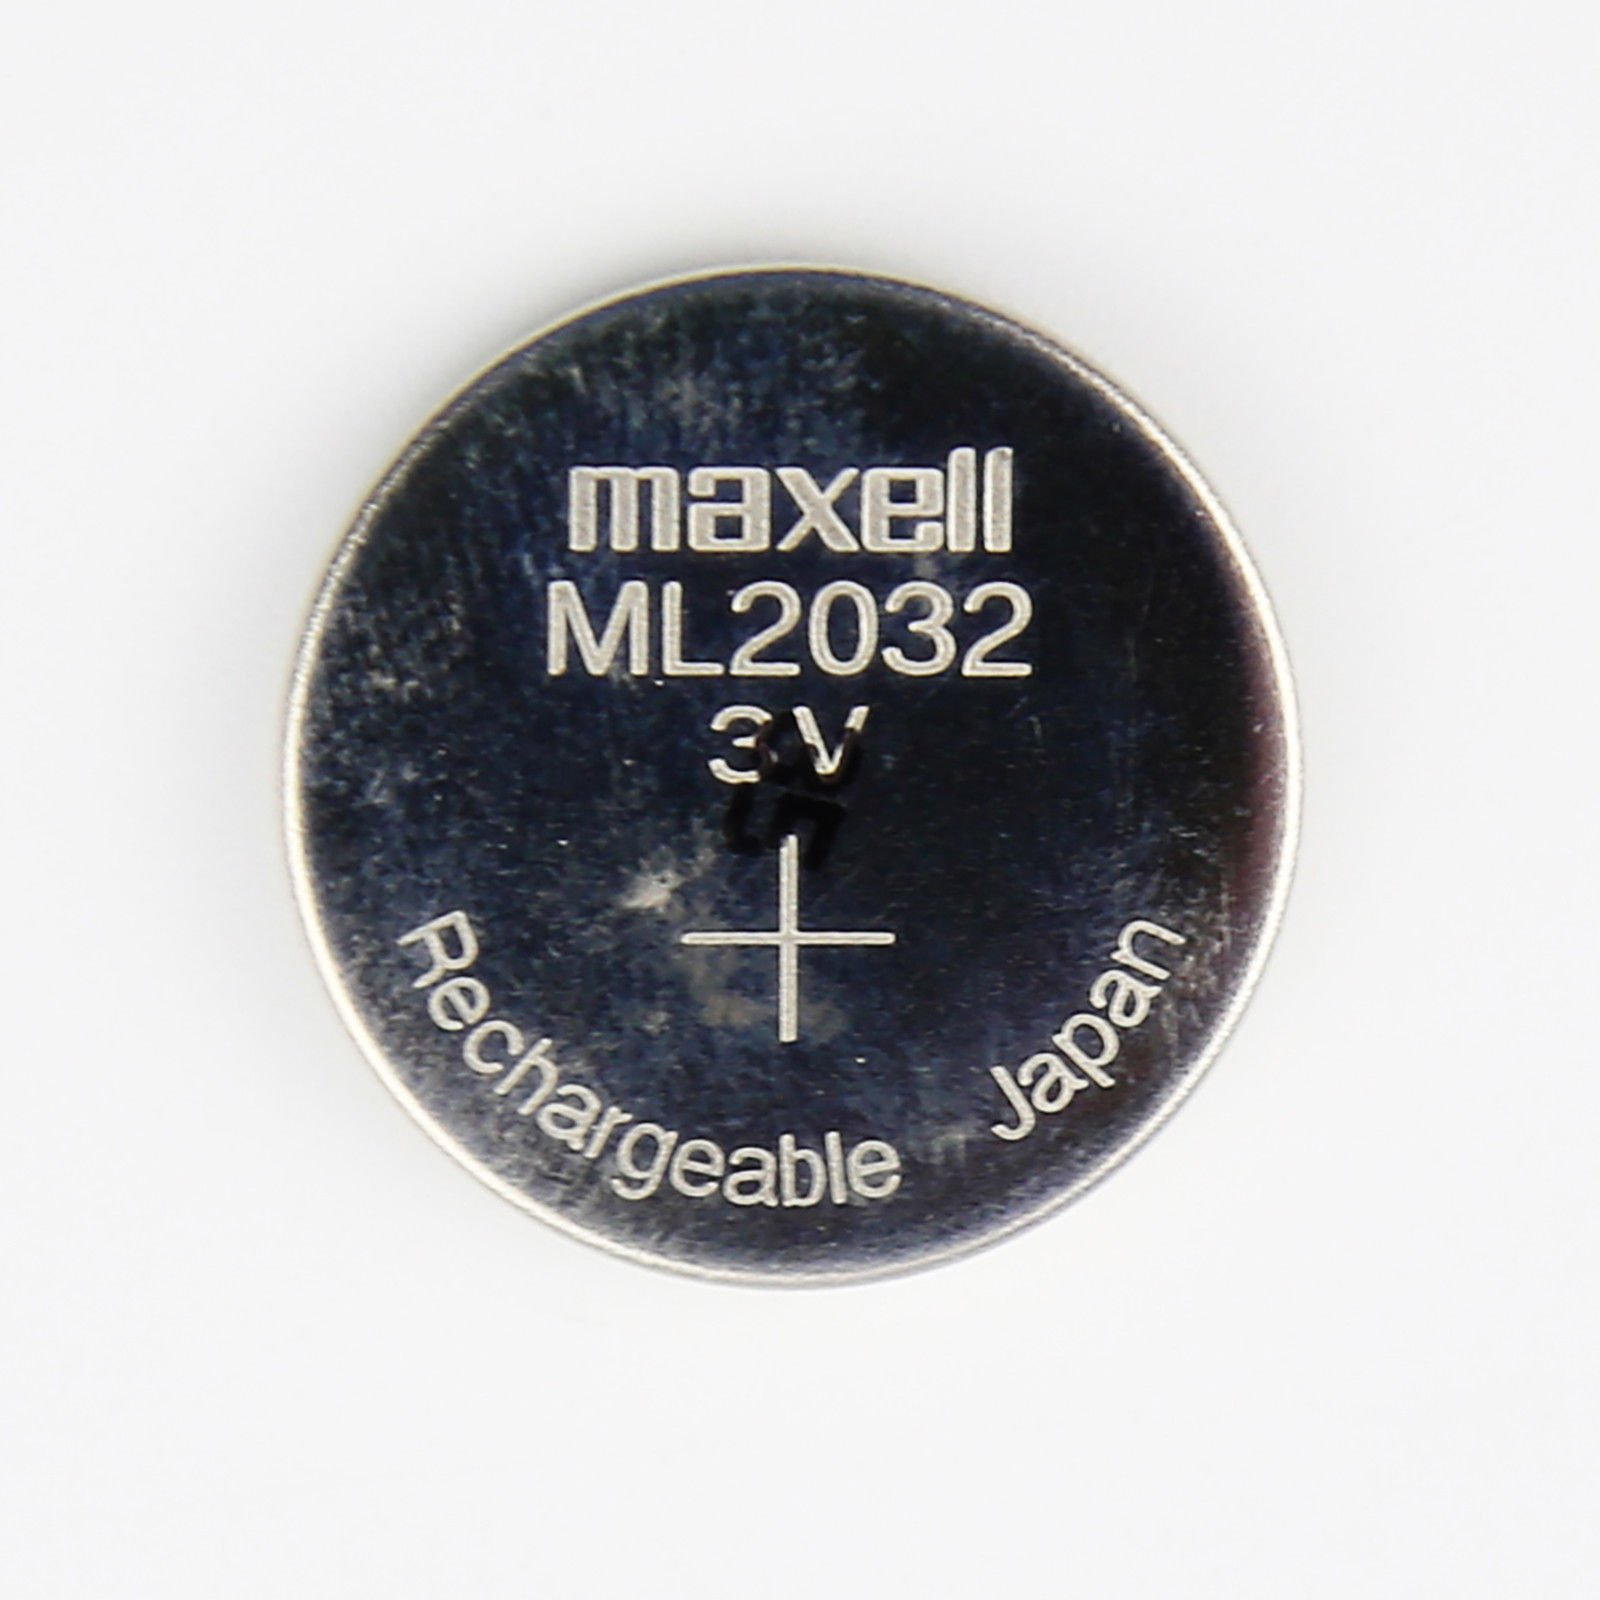 Maxell Ml2032 Rechargable 3v Coin Cell Lithium Am Taking Electricity From My Home To Garage Solved Fixya Motherboard Cmos Battery Electronics